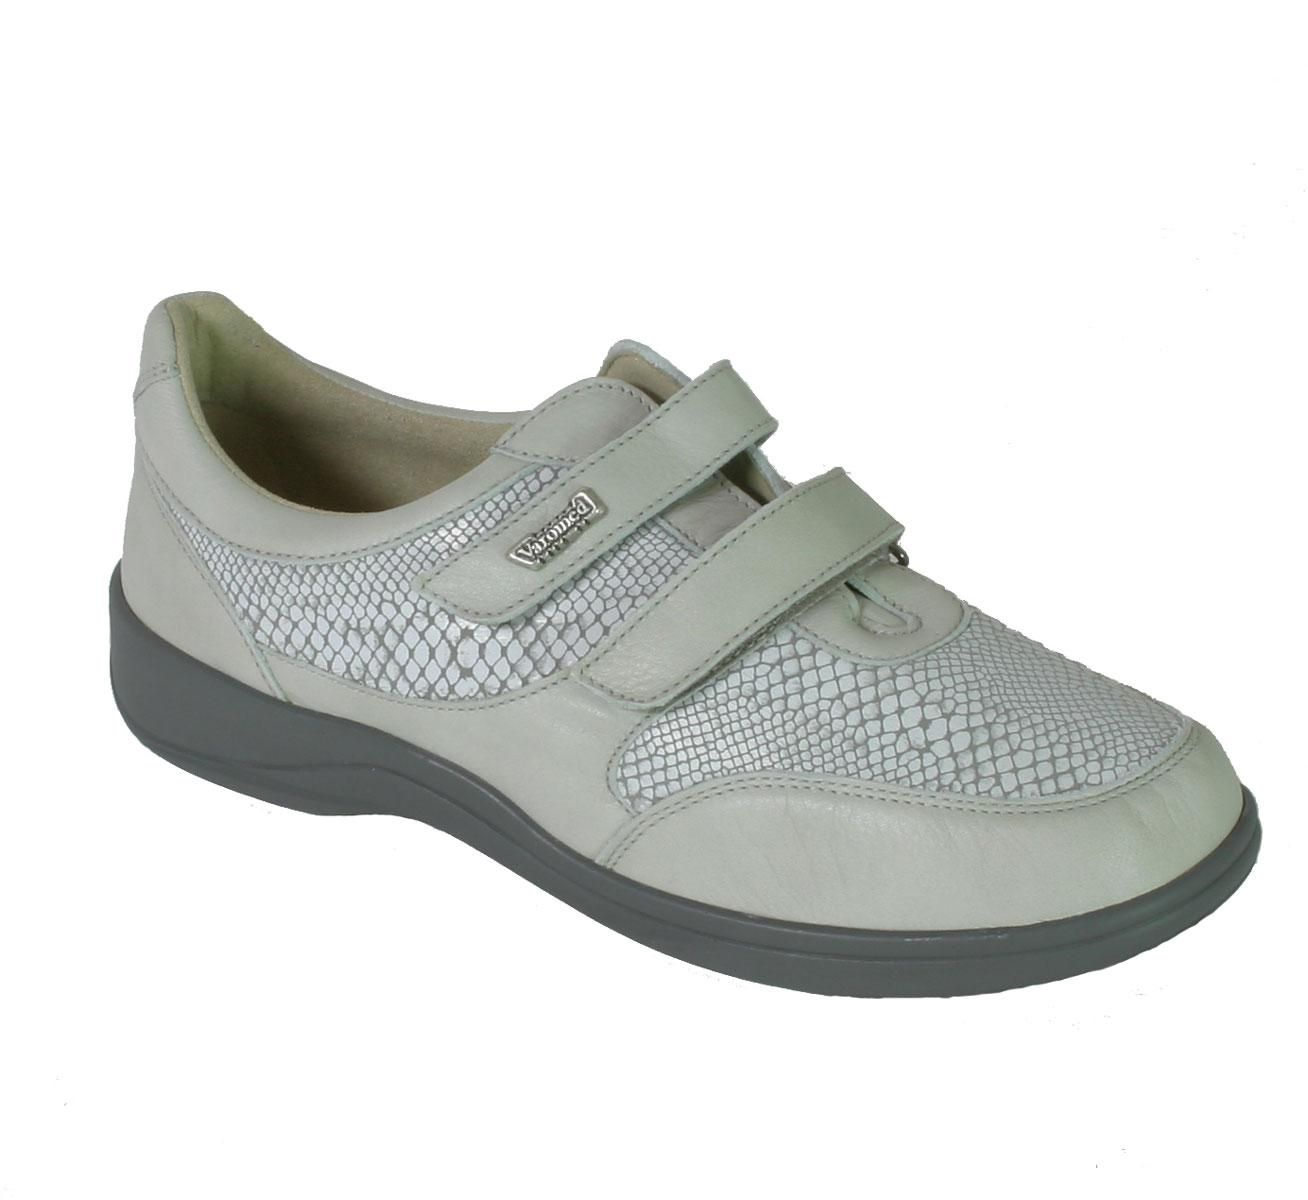 sports shoes a6729 e7790 Damen-Klett-Schuh Madrid, taubengrau